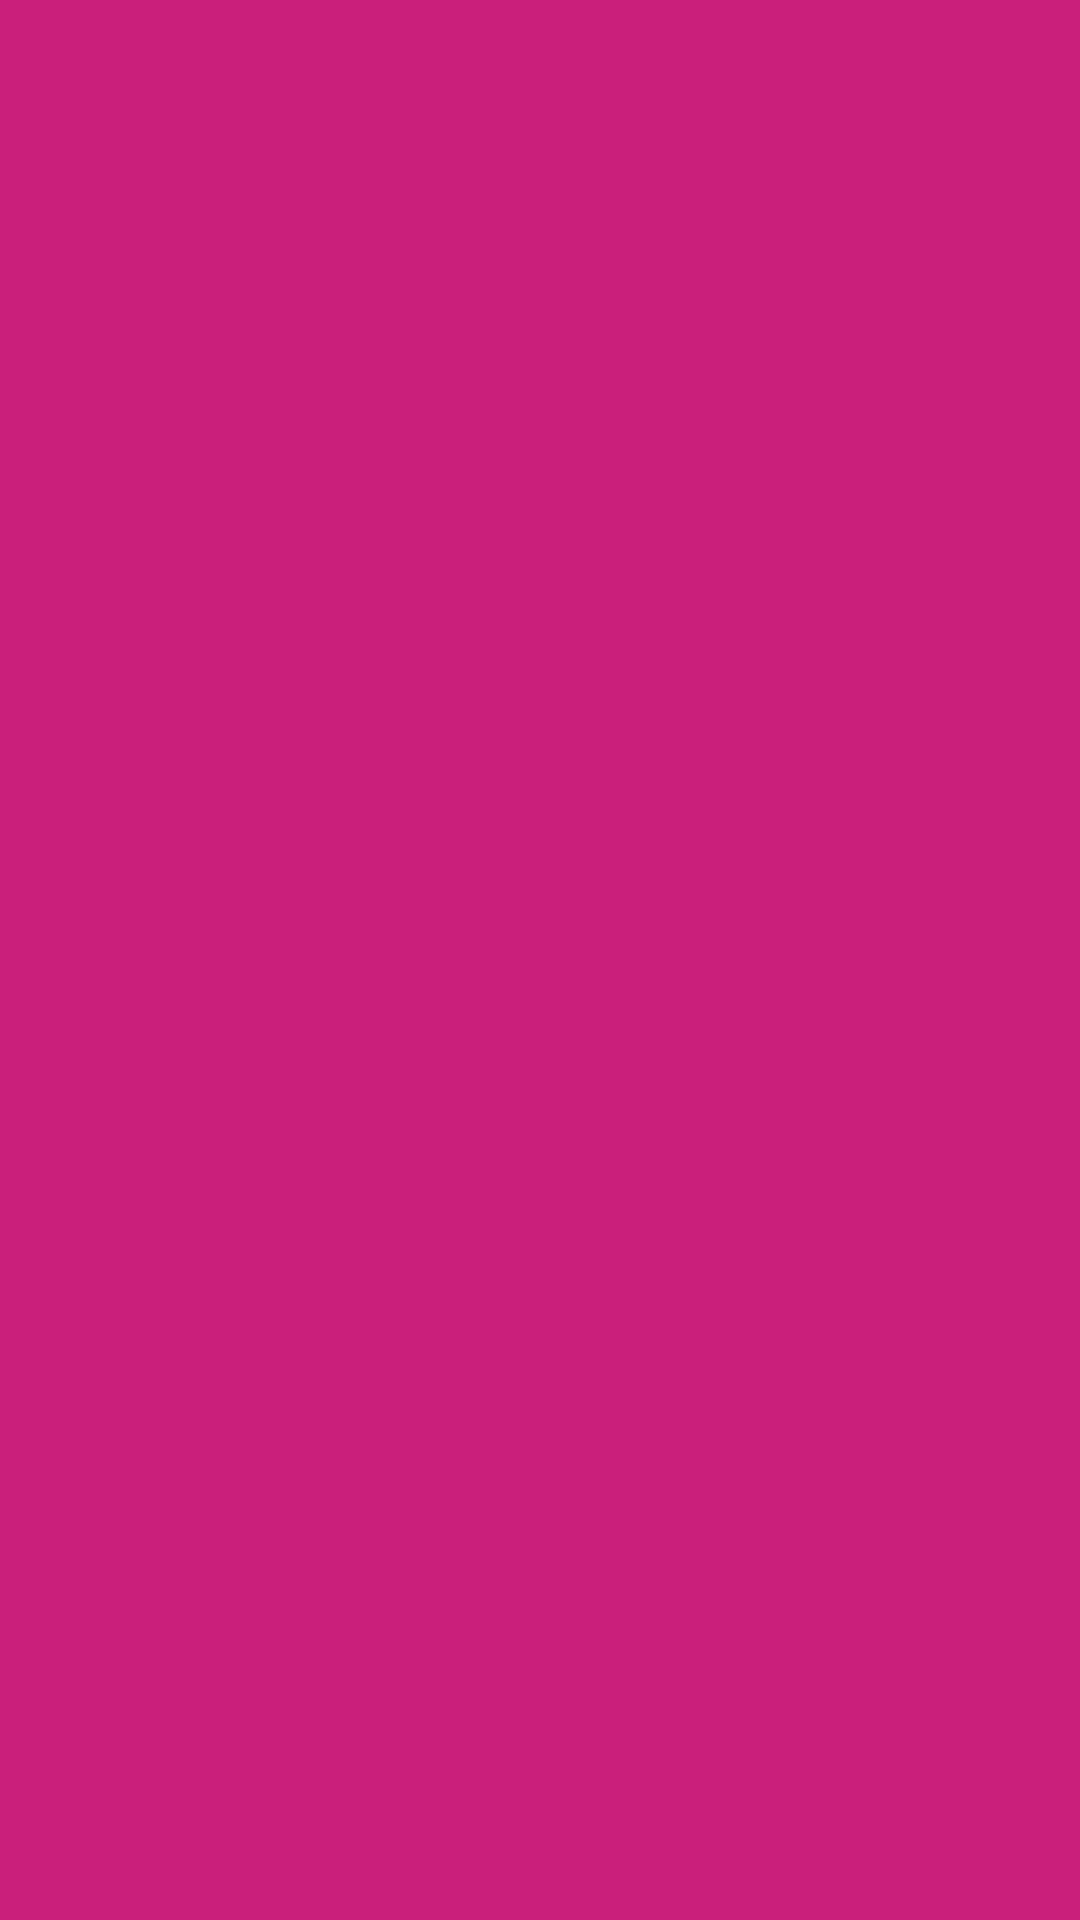 1080x1920 Magenta Dye Solid Color Background